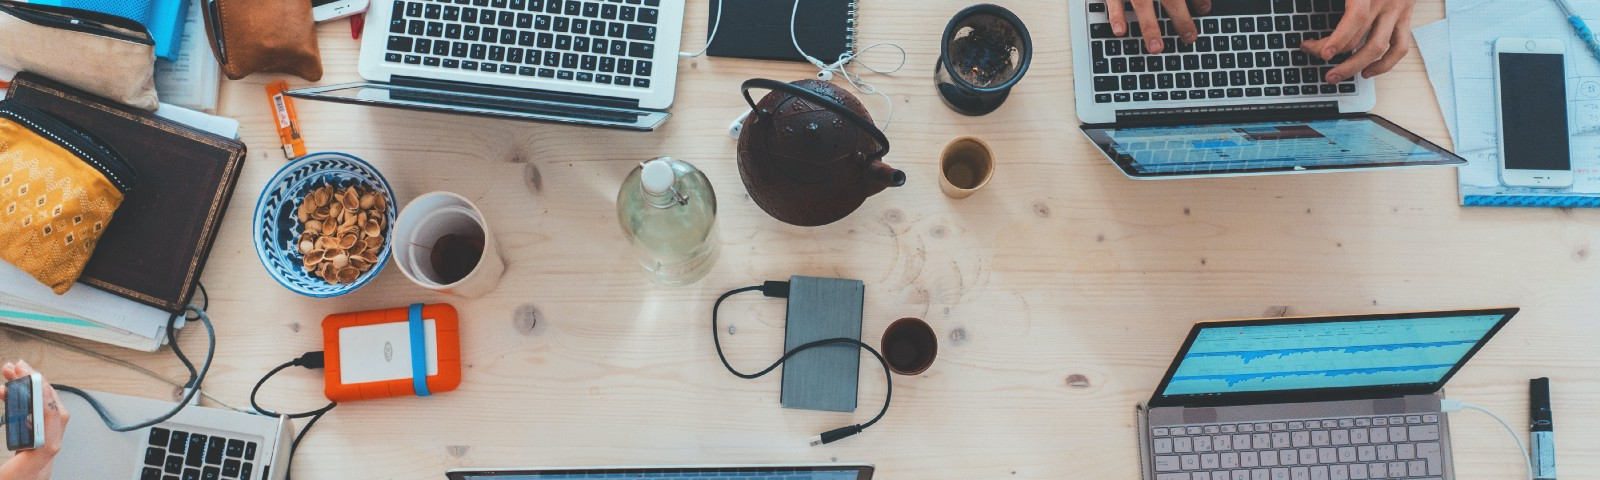 A cluttered work table covered in technology devices and snacks with 2 individuals doing work on those devices